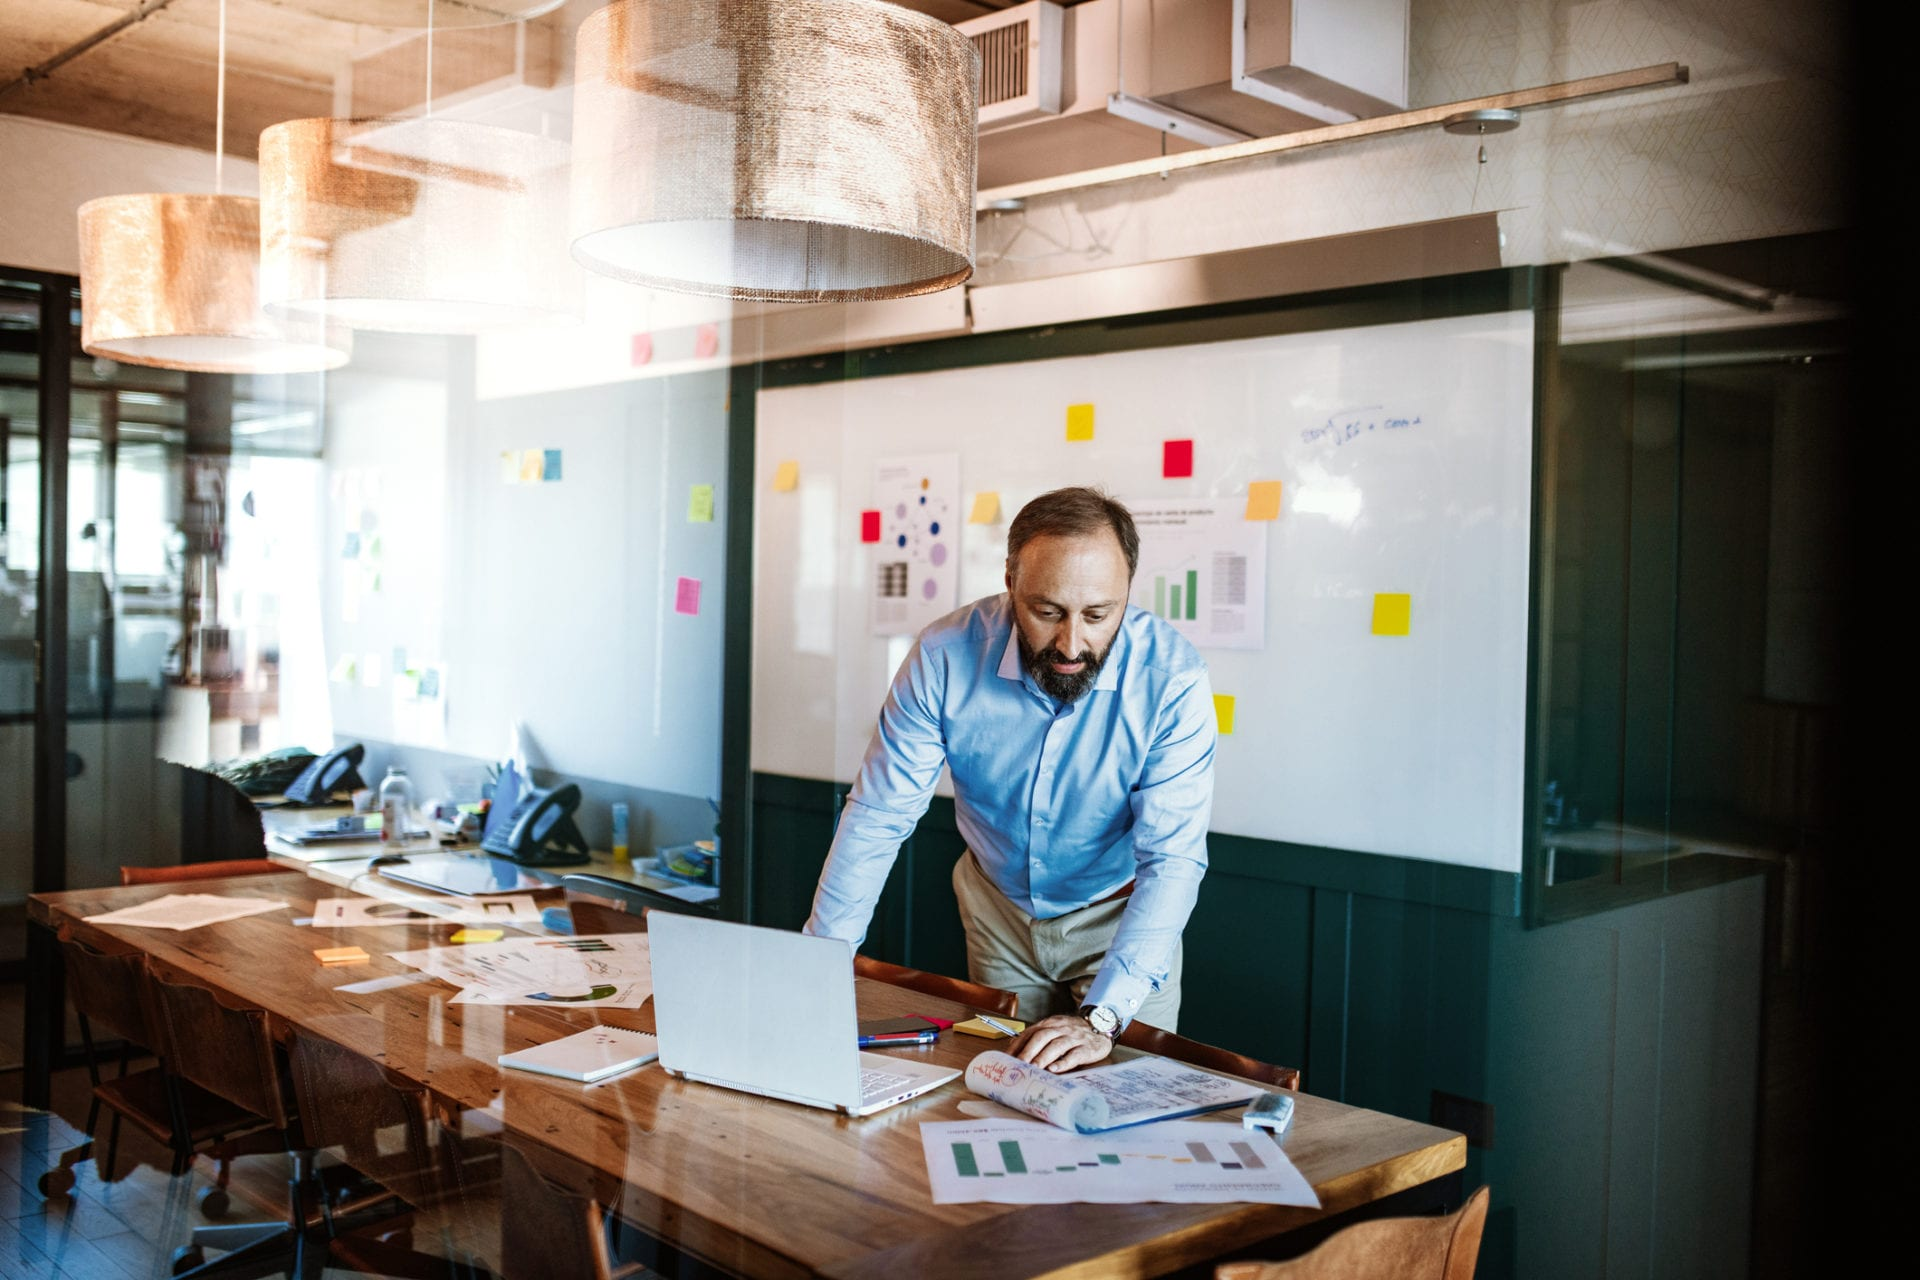 businessman in modern office space developing market research skills